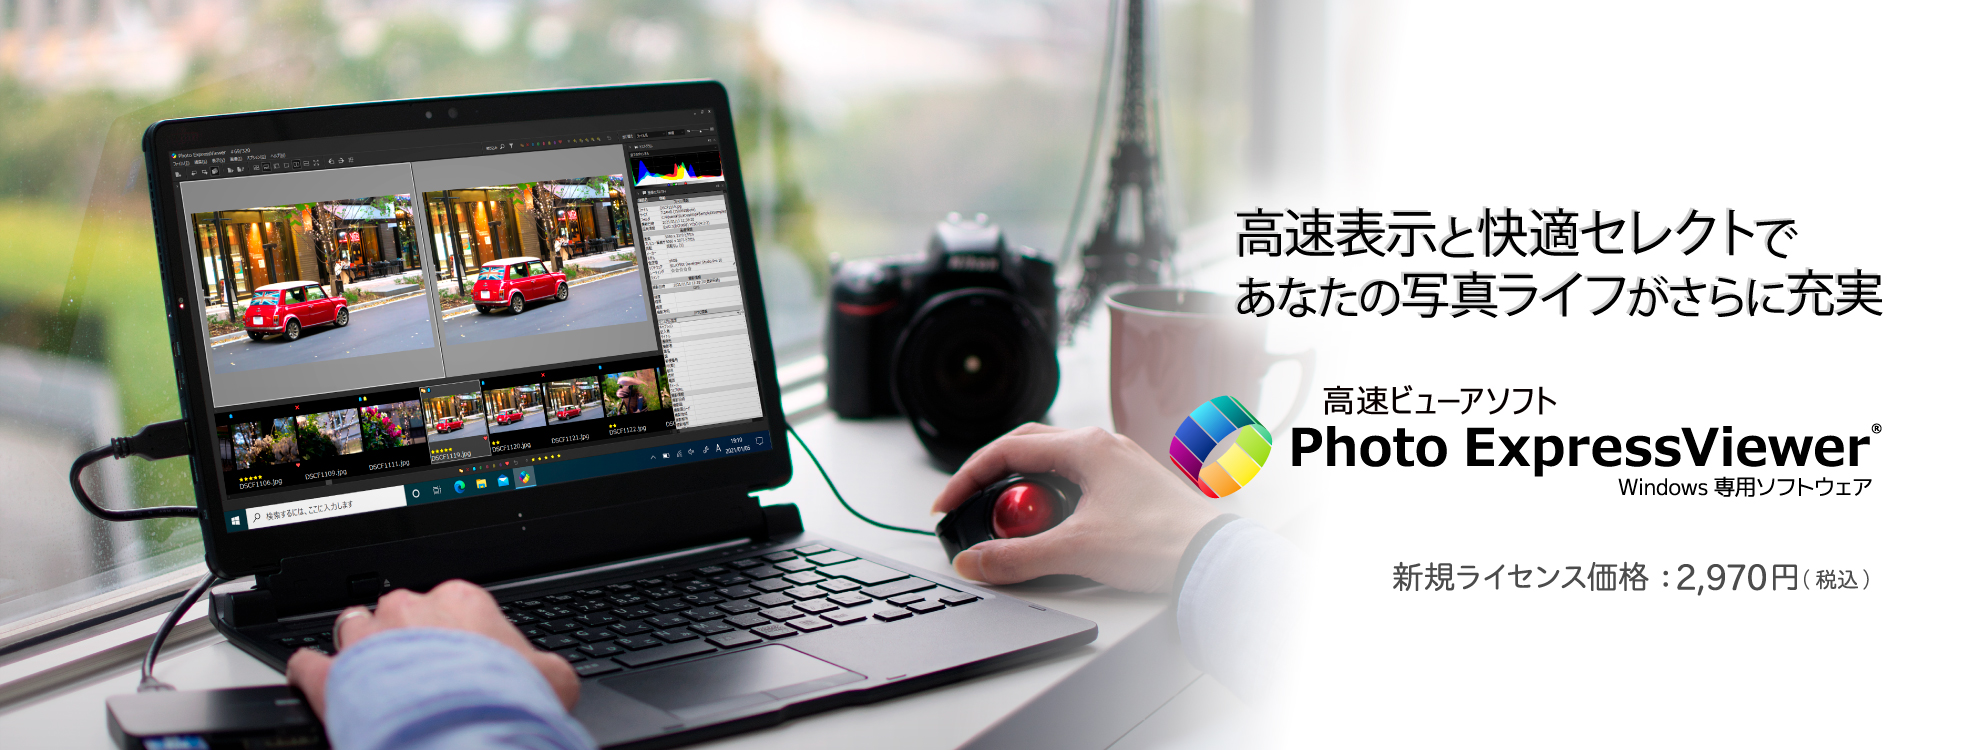 「Photo ExpressViewer」新発売